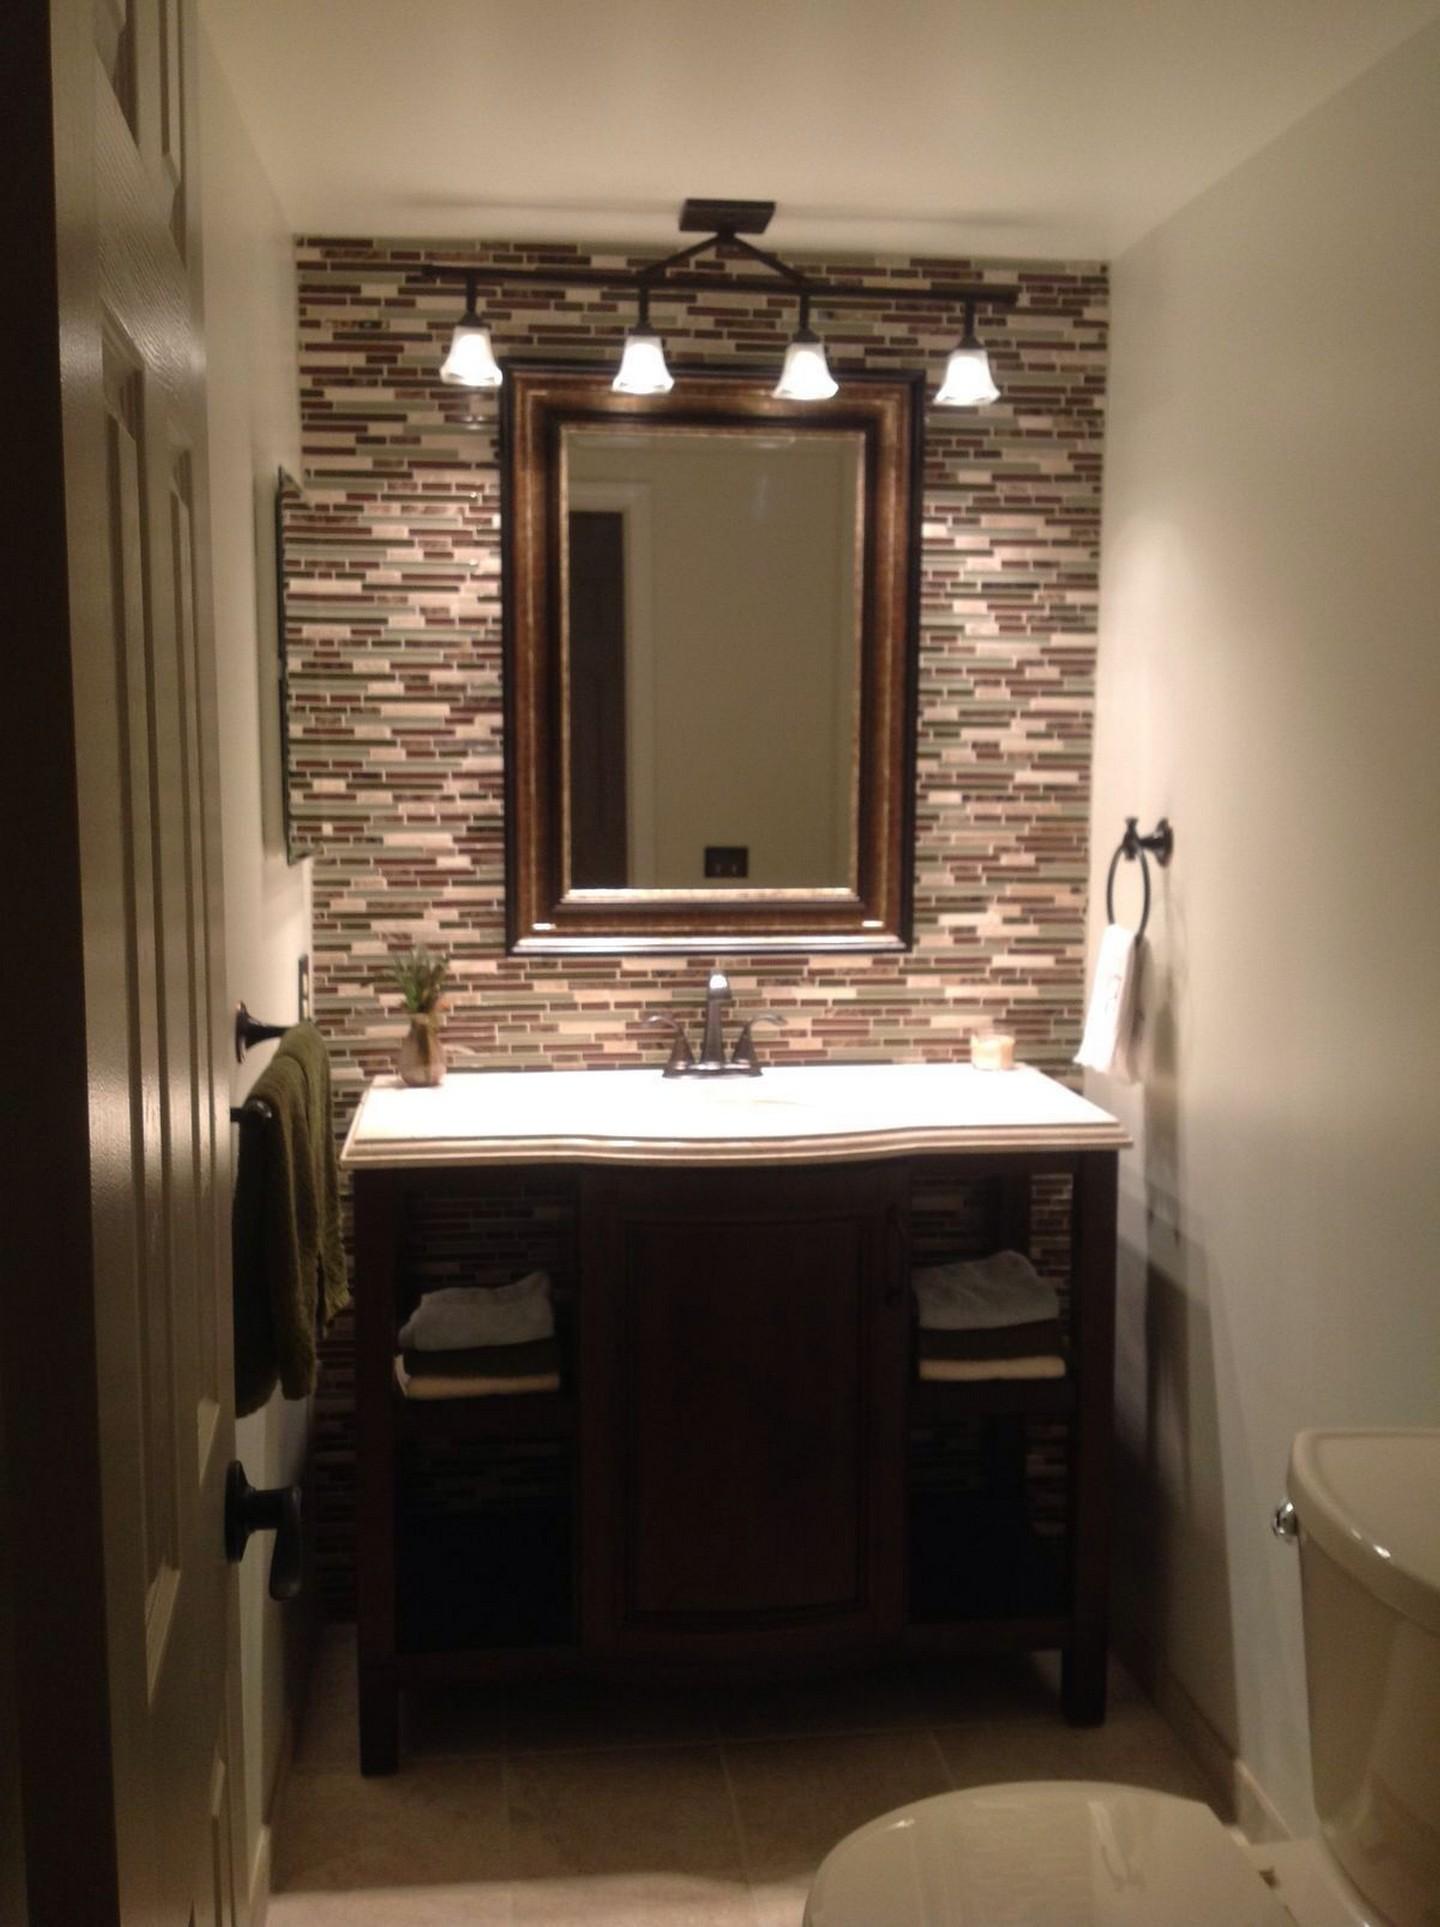 70 Master Bathroom Remodeling For Man and Woman Home Decor 29